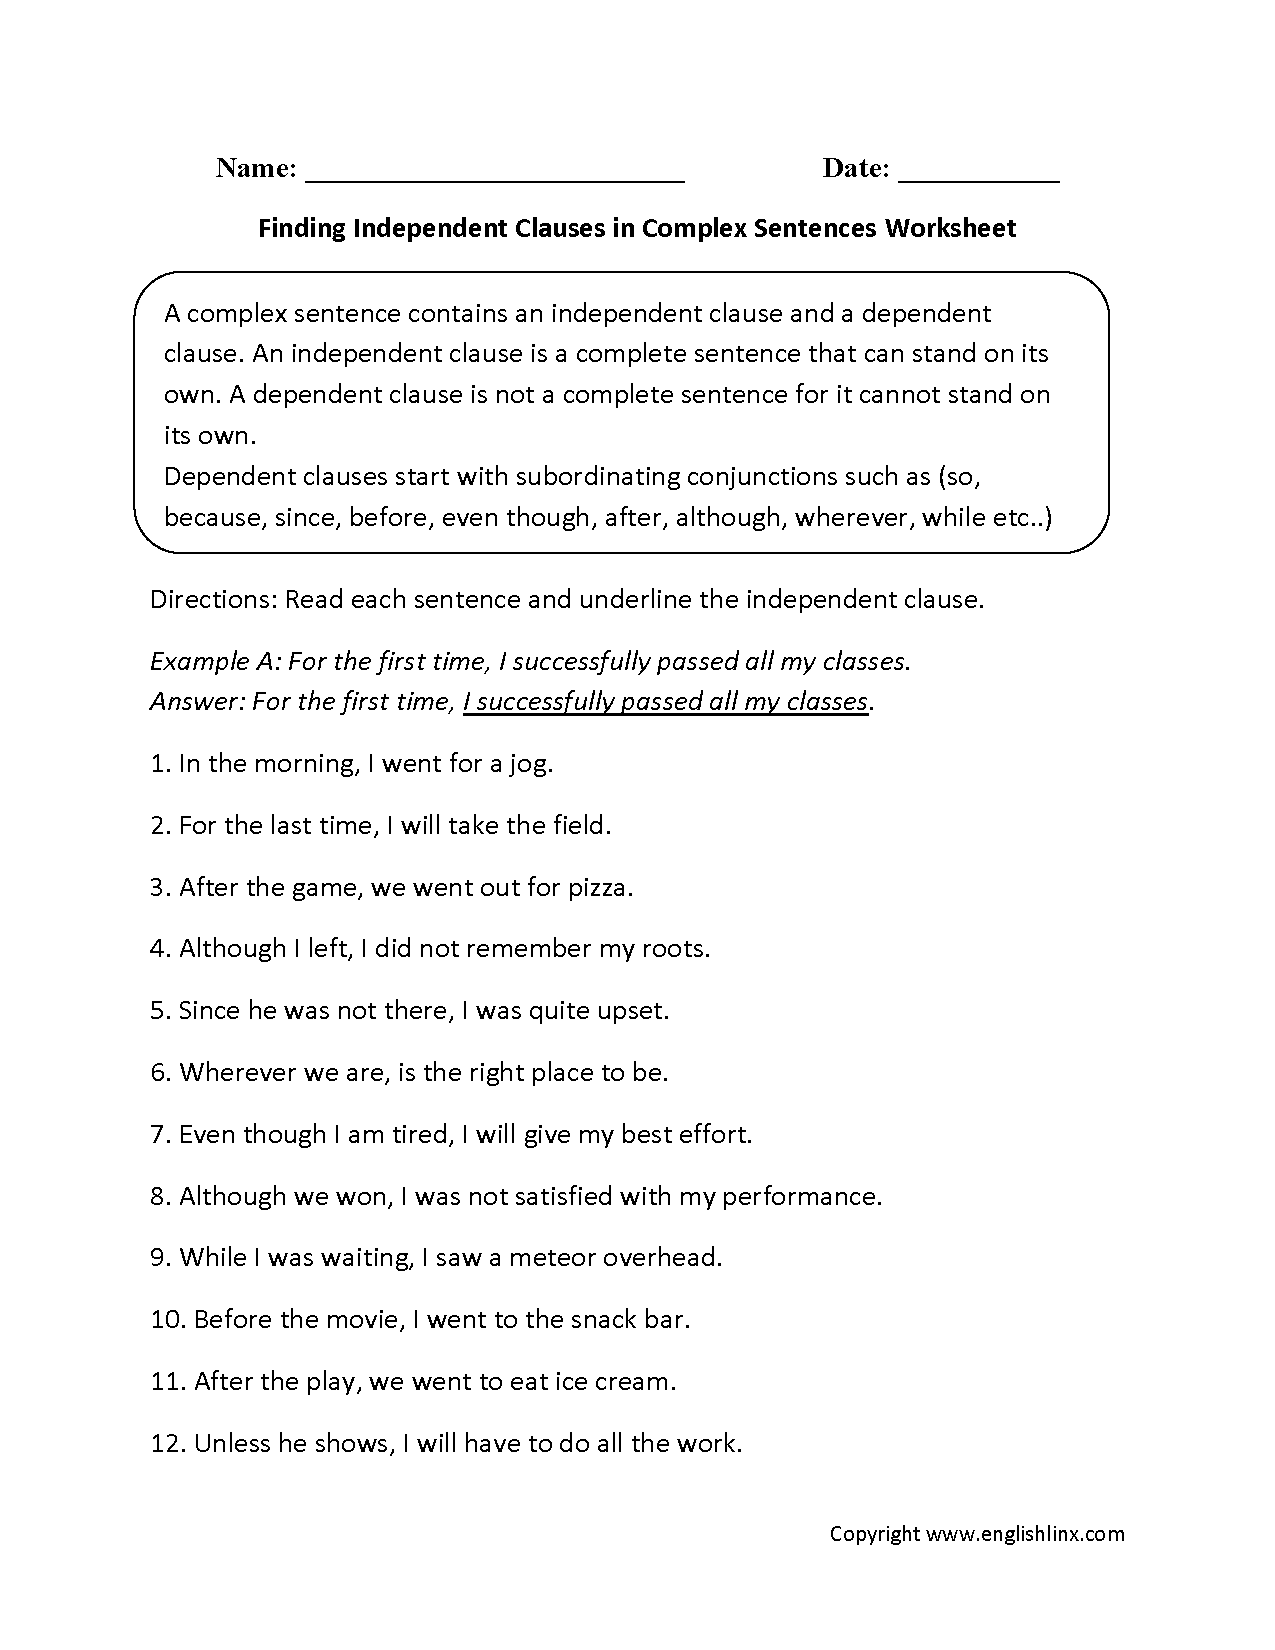 Finding Independent Clauses Complex Sentences Worksheets